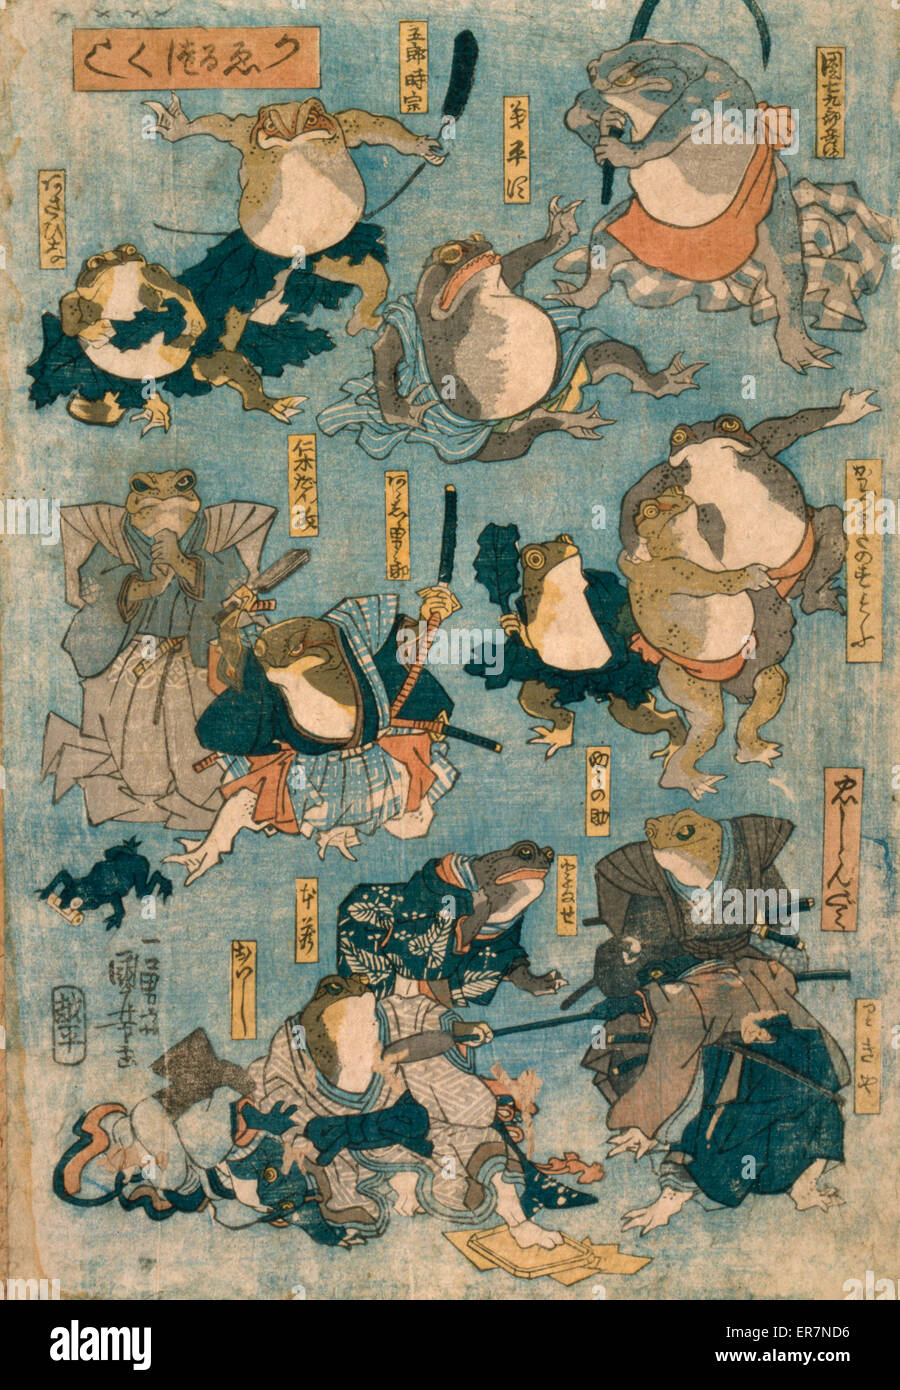 Famous heroes of the kabuki stage played by frogs. Ukiyo-e print illustration showing frogs dressed in costume acting - Stock Image